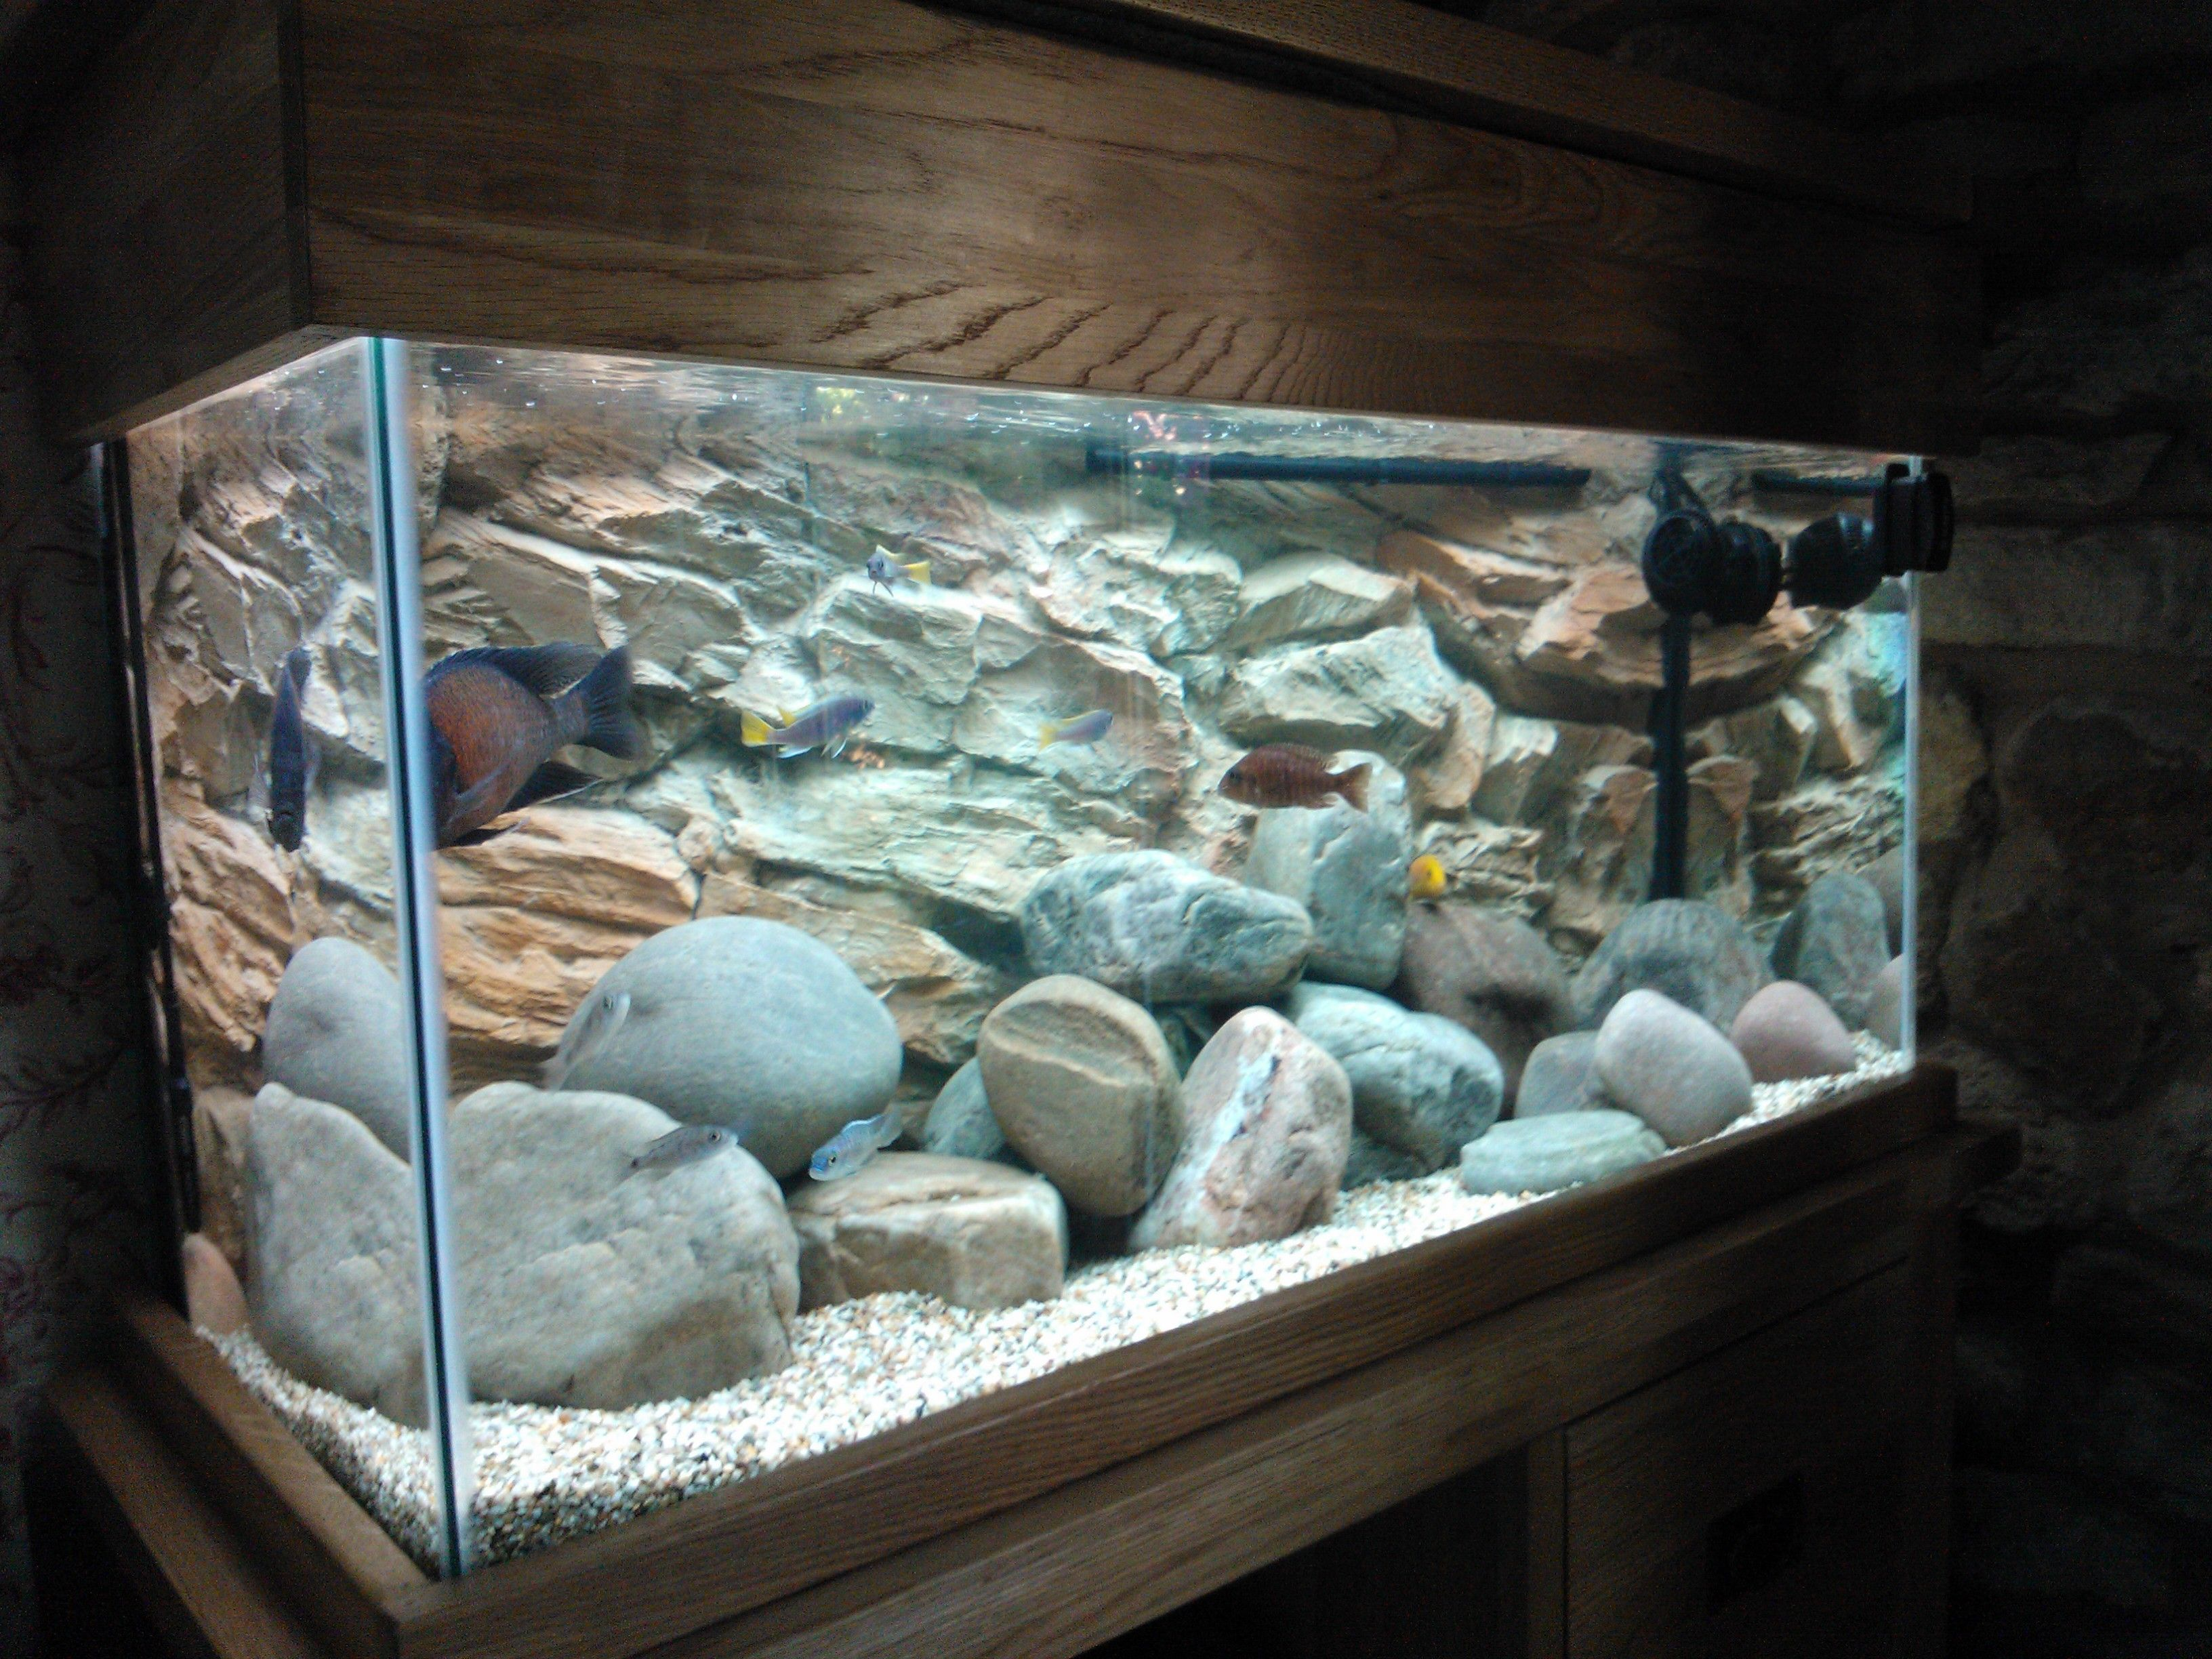 3d rock background aquariums pinterest 3d rock and for Aquarium stone decoration